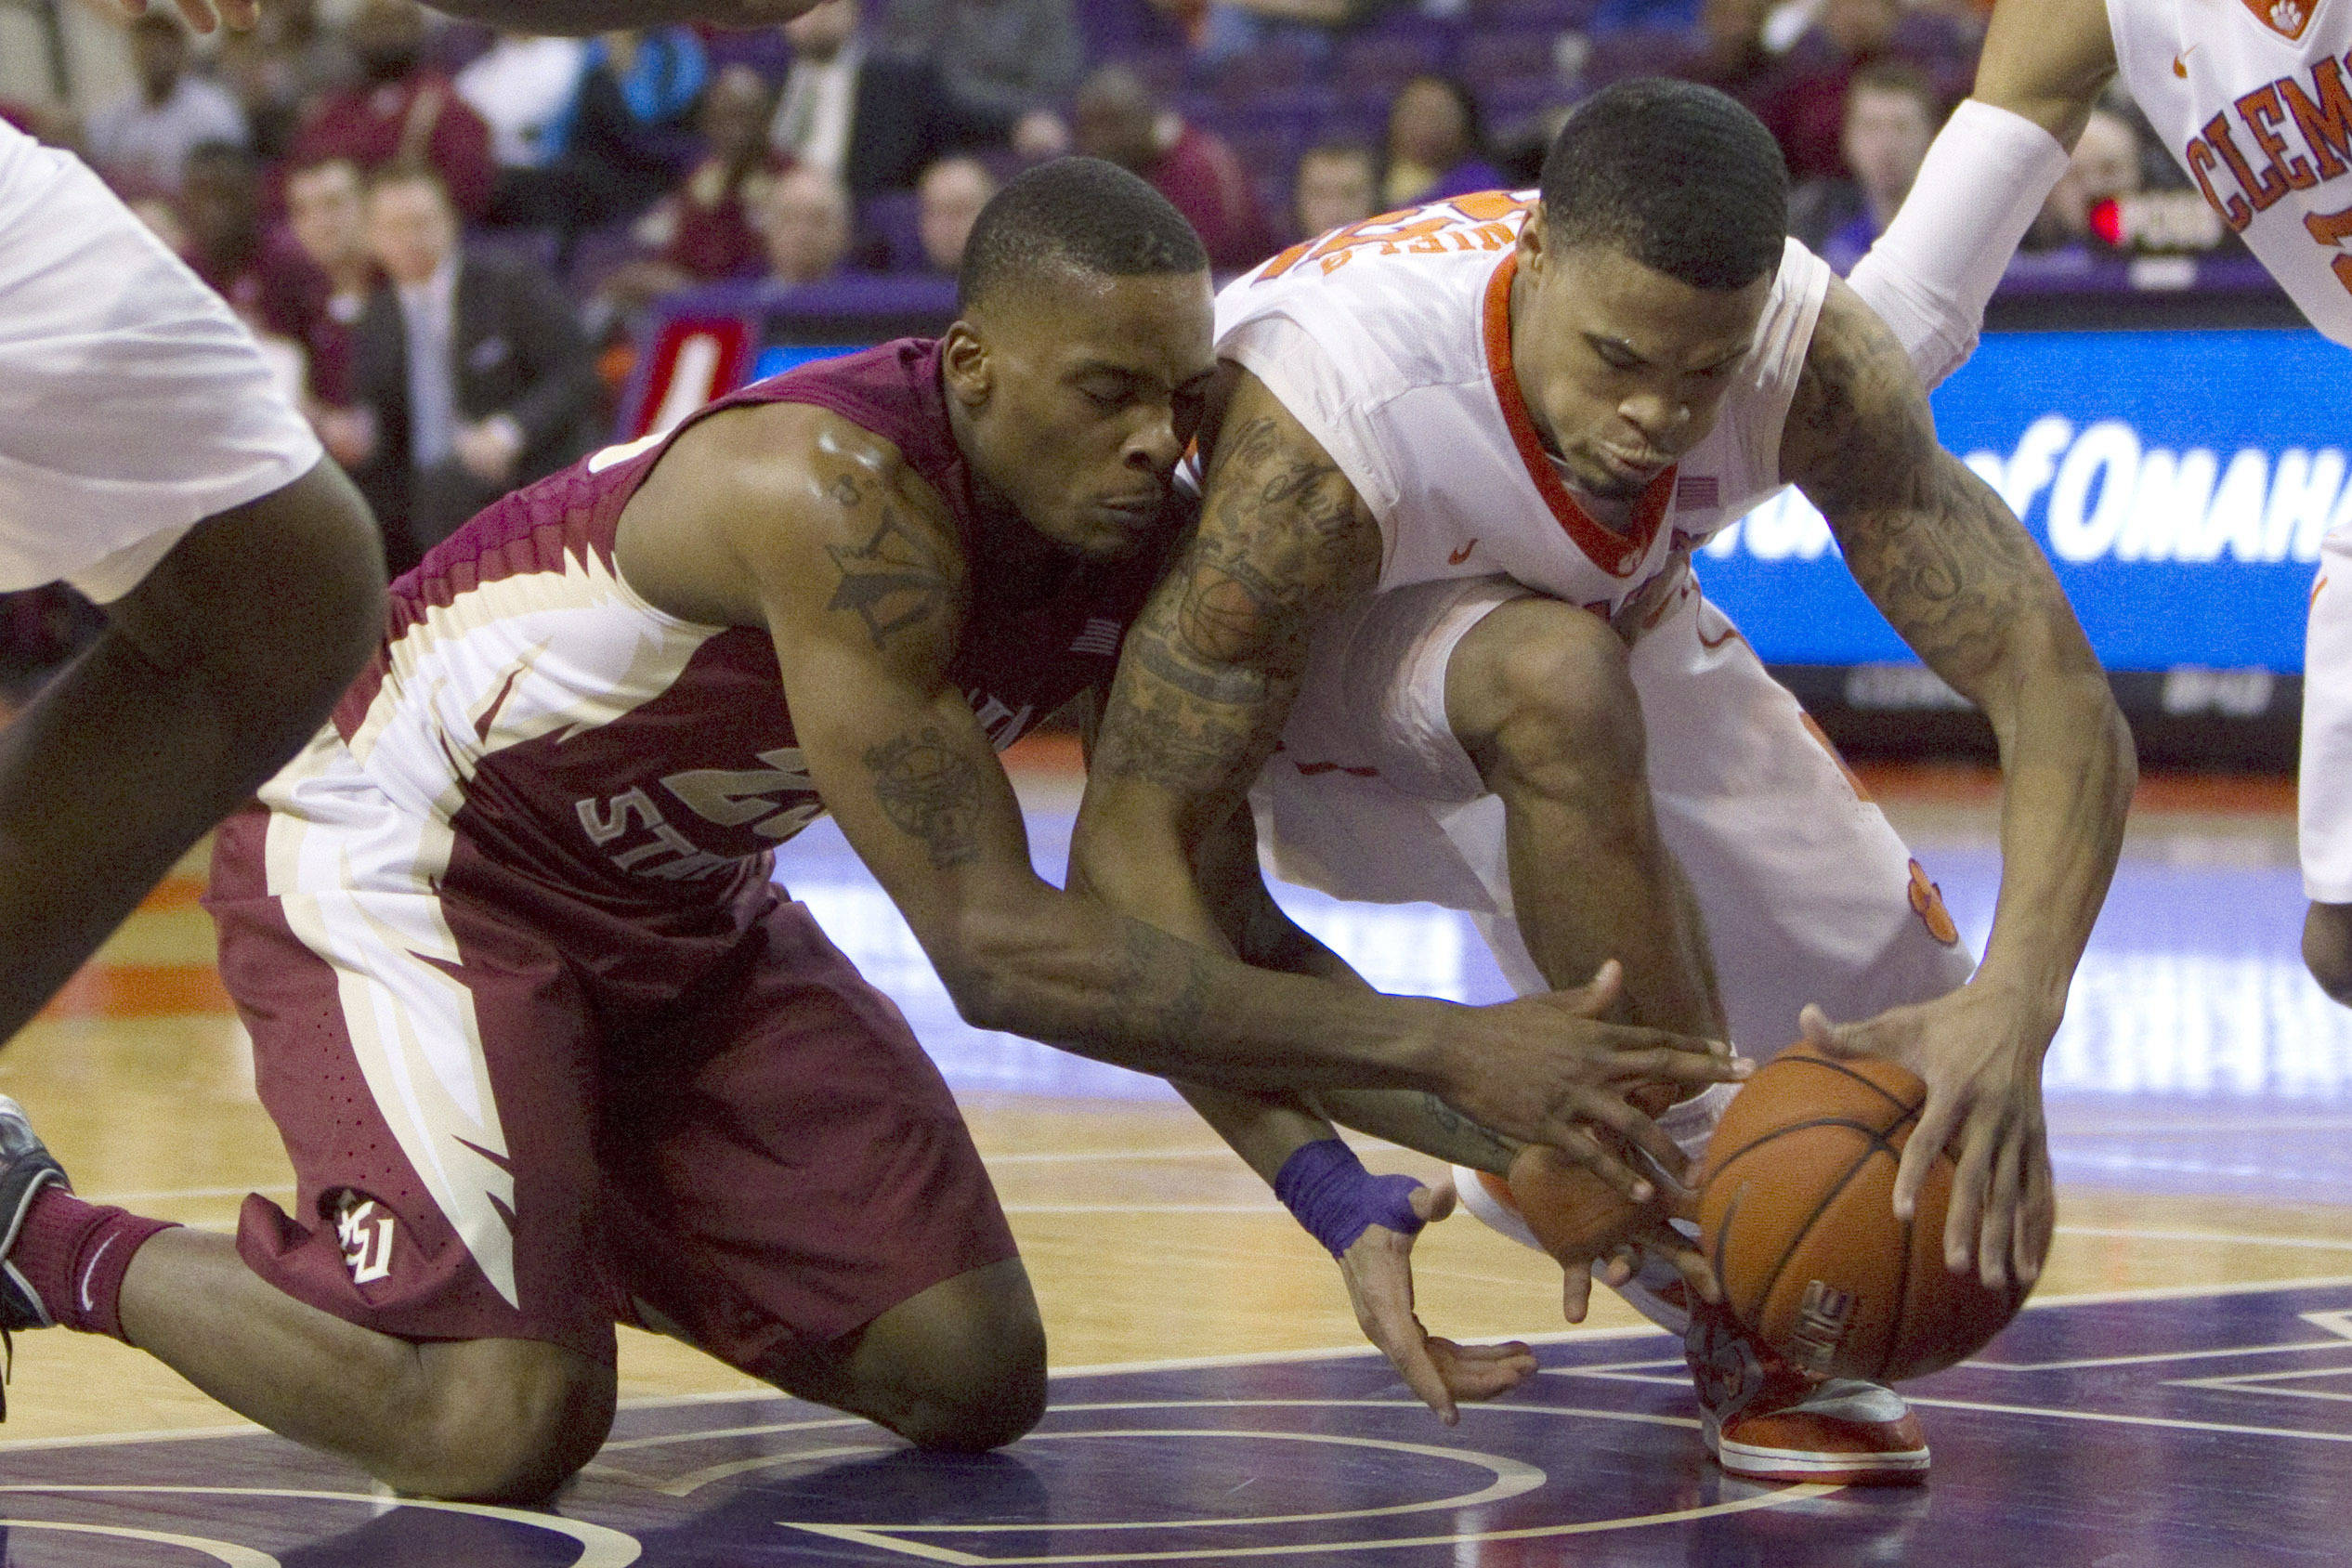 Jan 9, 2014; Clemson, SC, USA; Florida State Seminoles guard Aaron Thomas (left) and Clemson Tigers forward K.J. McDaniels (right) battle for control of the ball during the first half at J.C. Littlejohn Coliseum. Mandatory Credit: Joshua S. Kelly-USA TODAY Sports